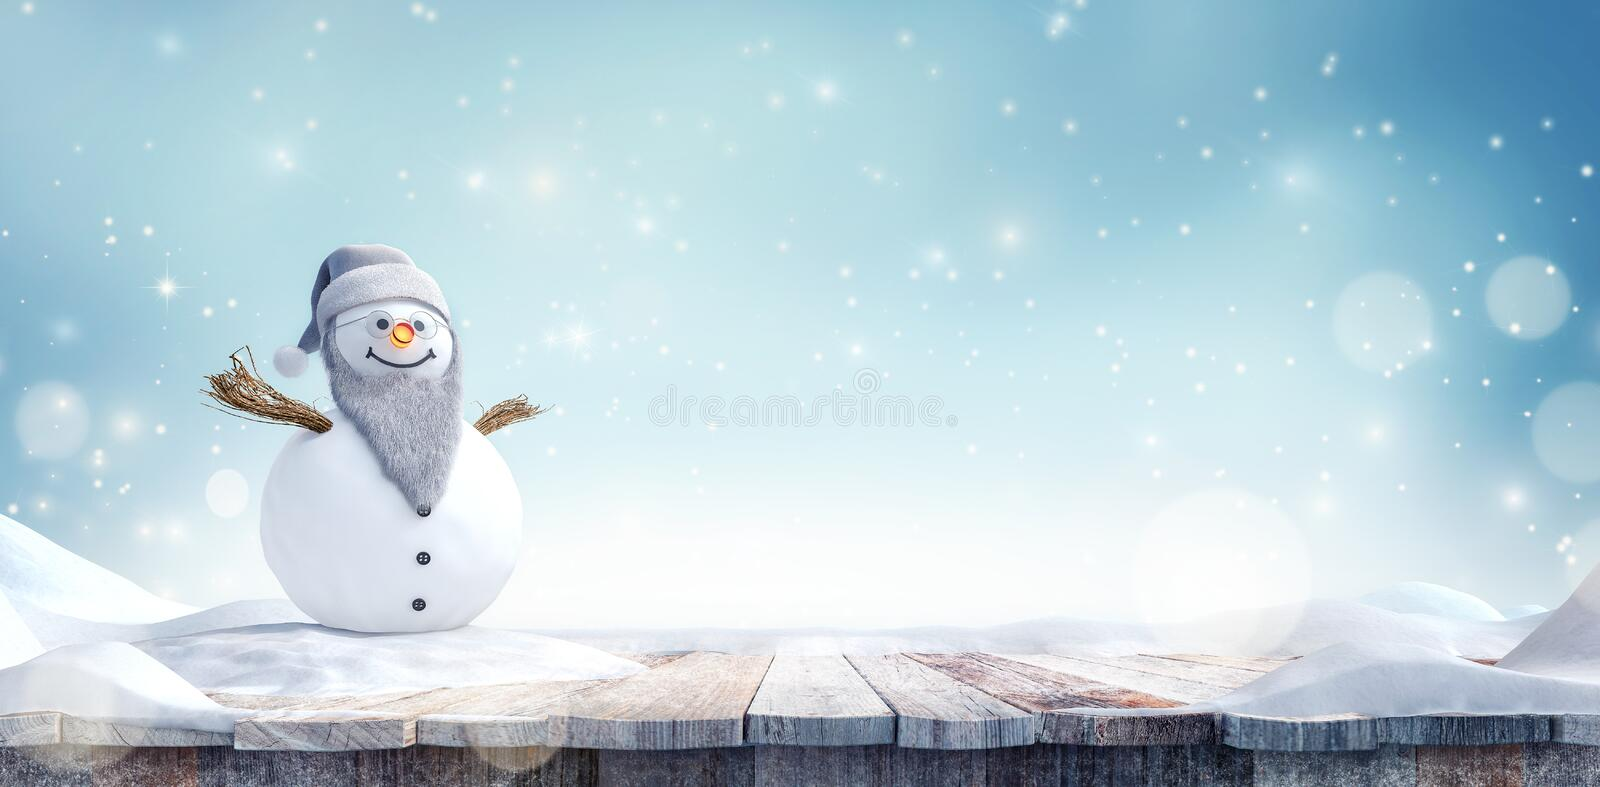 Grandpa Snowman with beard and glasses in winter landscape stock images